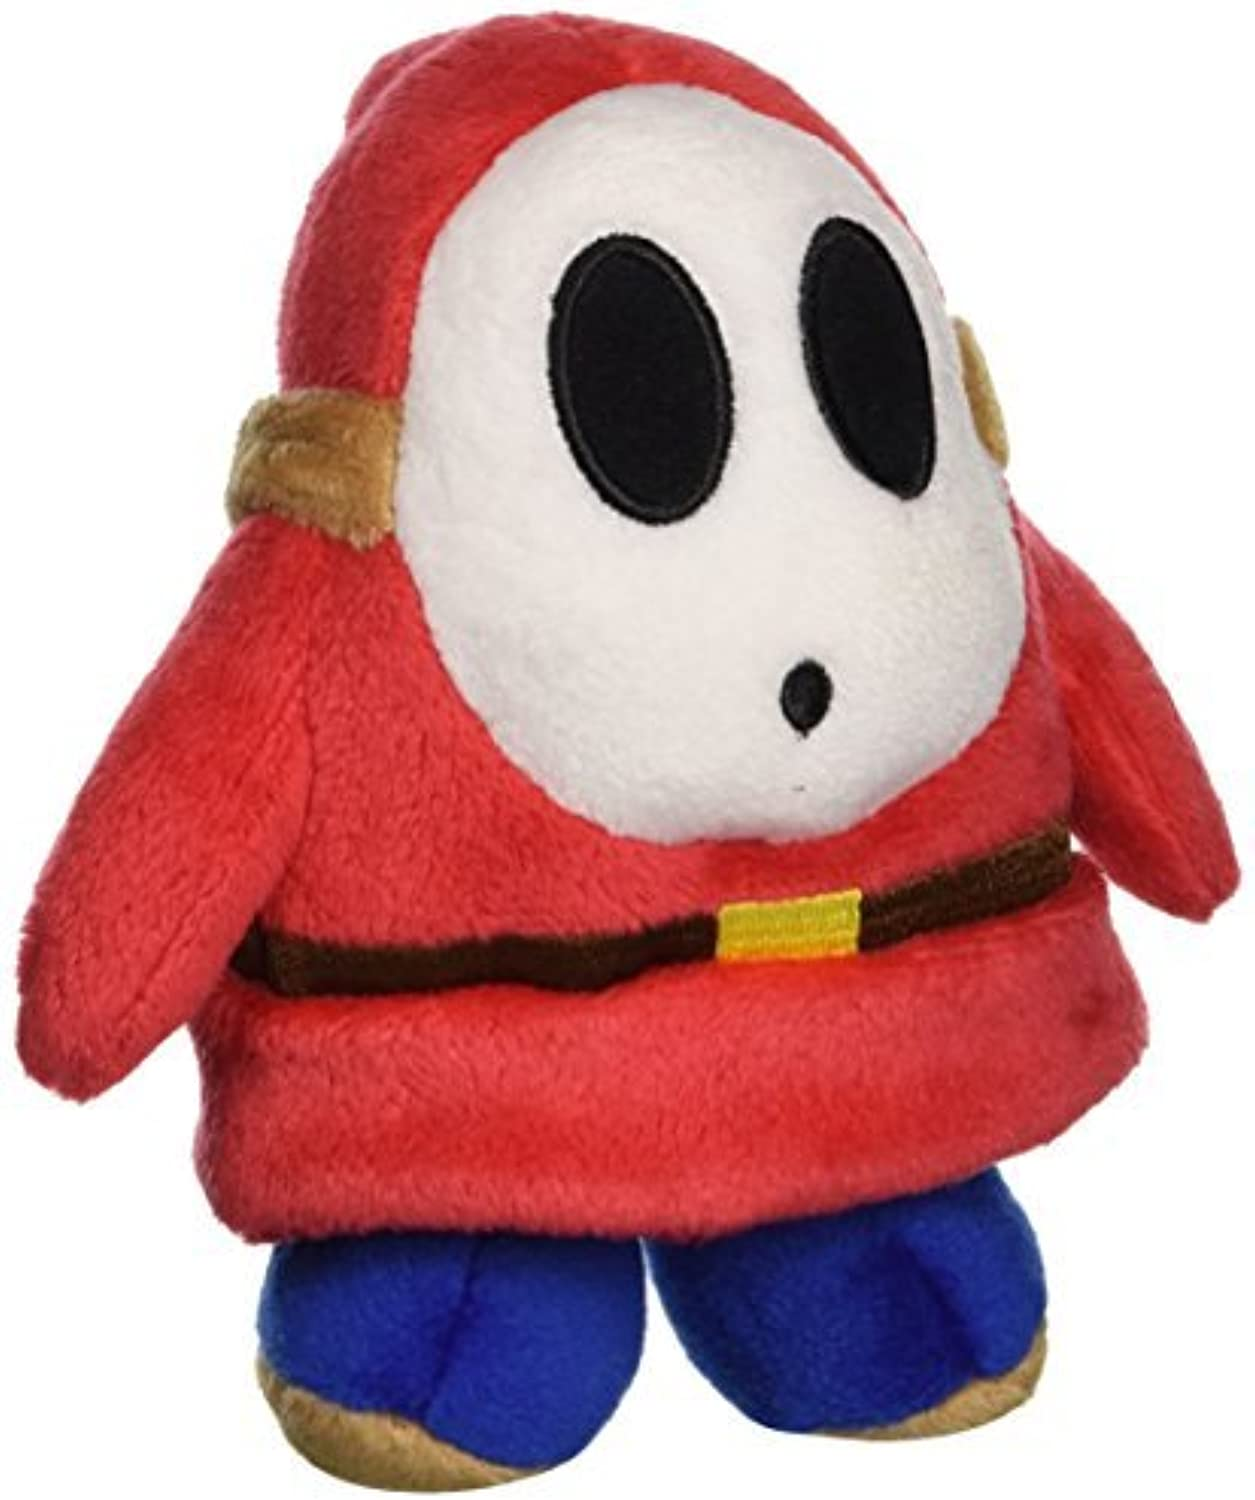 Sanei Officially Licensed Super Mario Plush 5 Shy Guy by Sanei